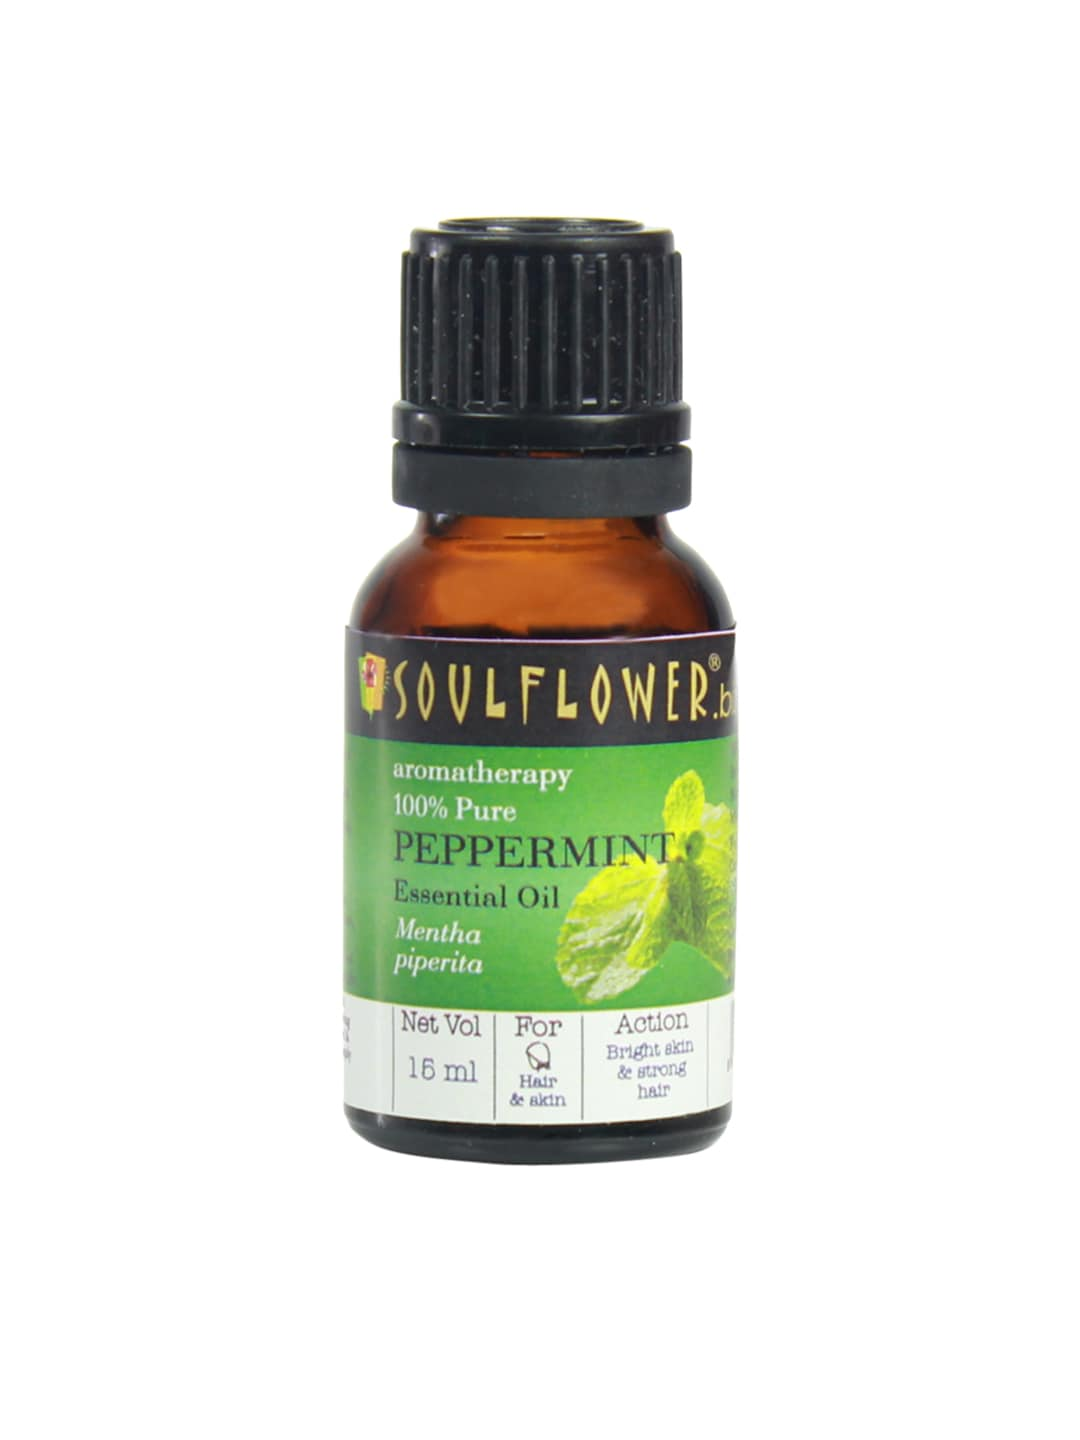 Soulflower Unisex Peppermint Essential Oil image